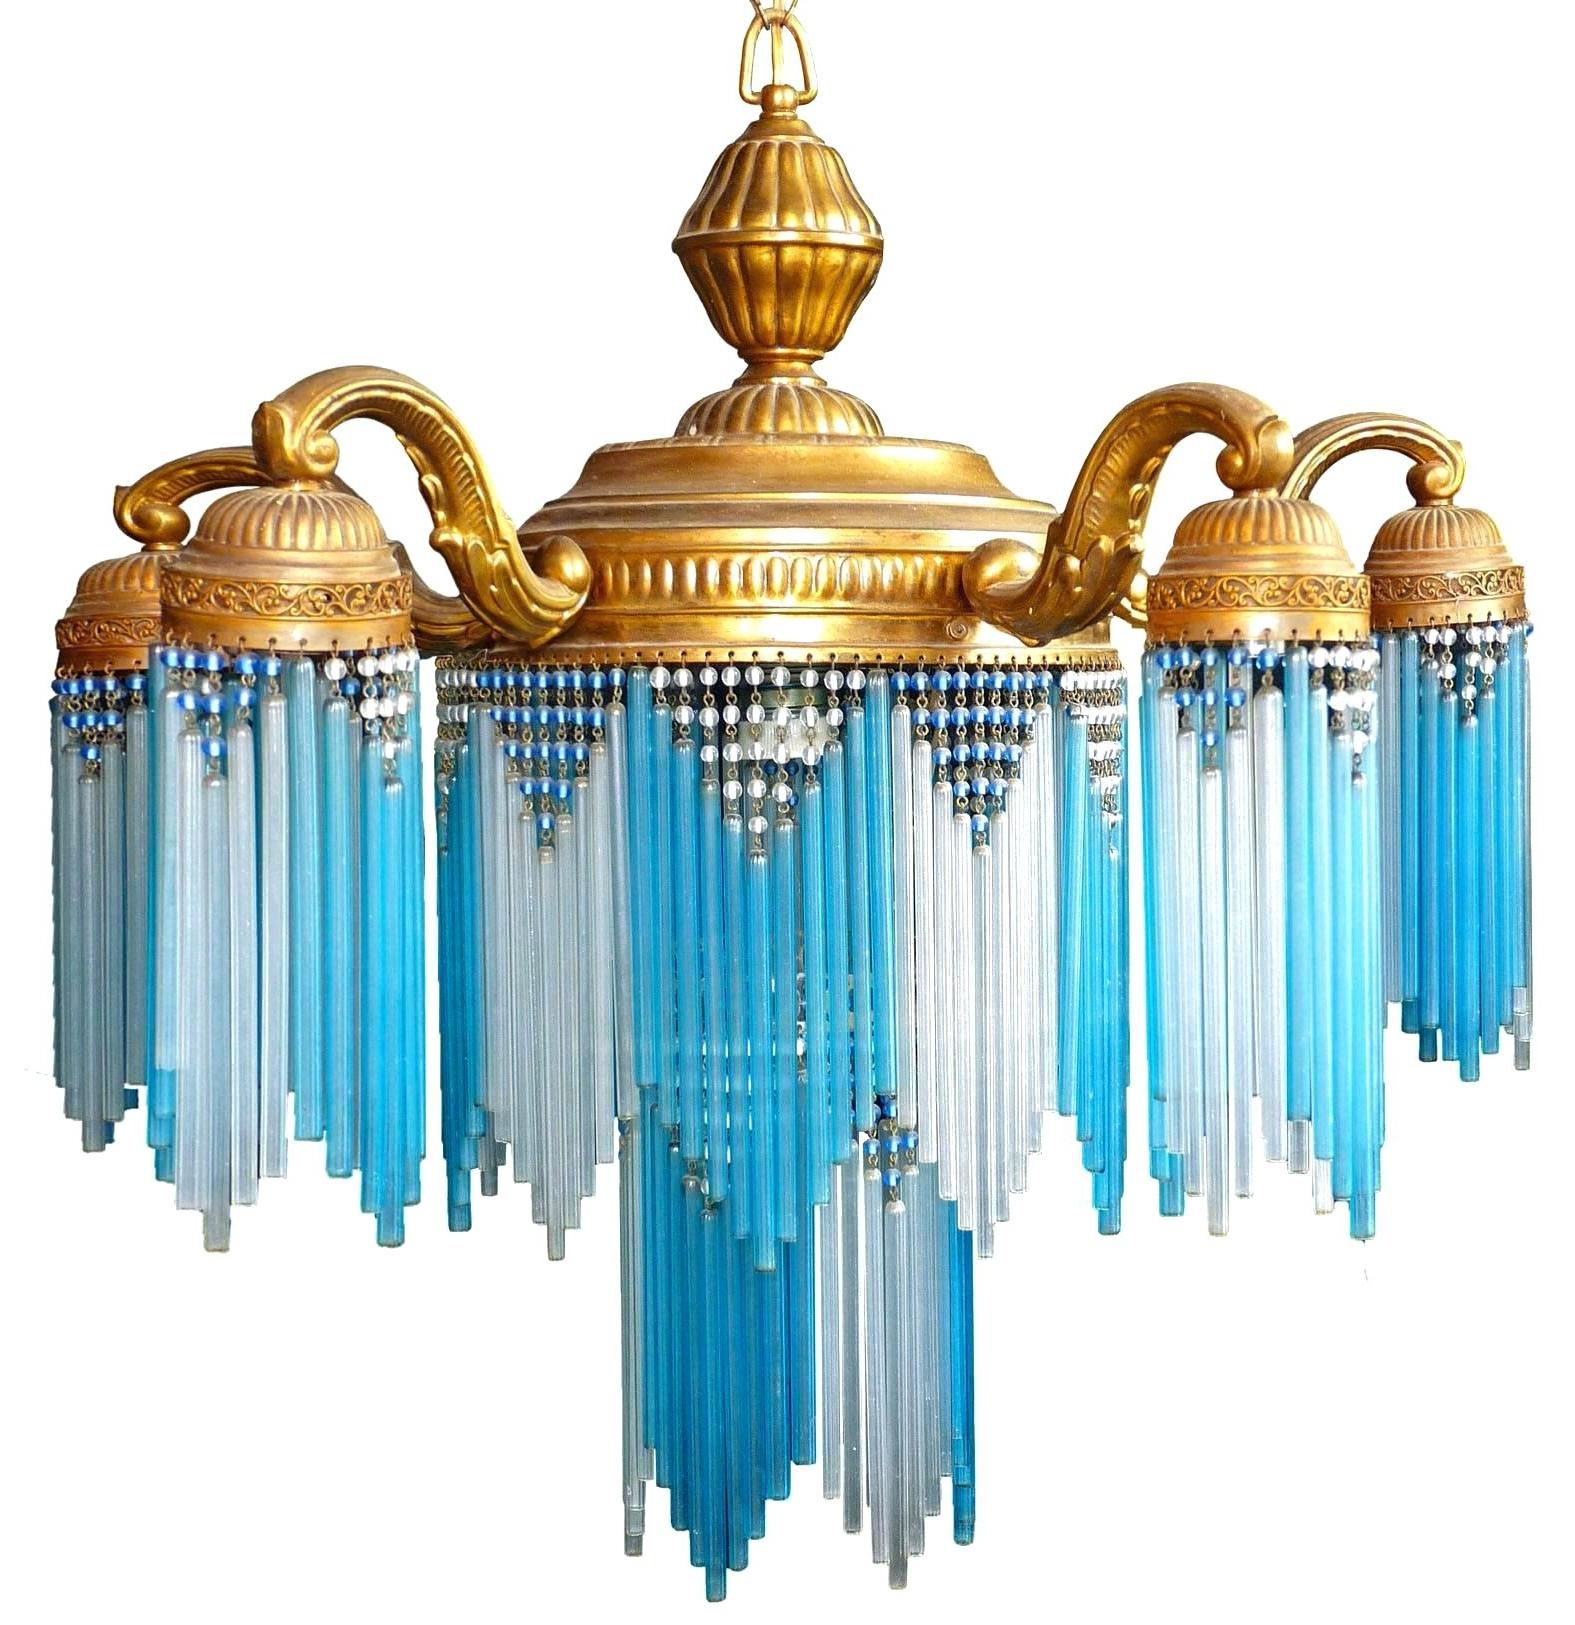 2019 Lighting : Regina Andrew Turquoise Chandelier Light Wood Diy Small In Small Turquoise Beaded Chandeliers (View 3 of 20)